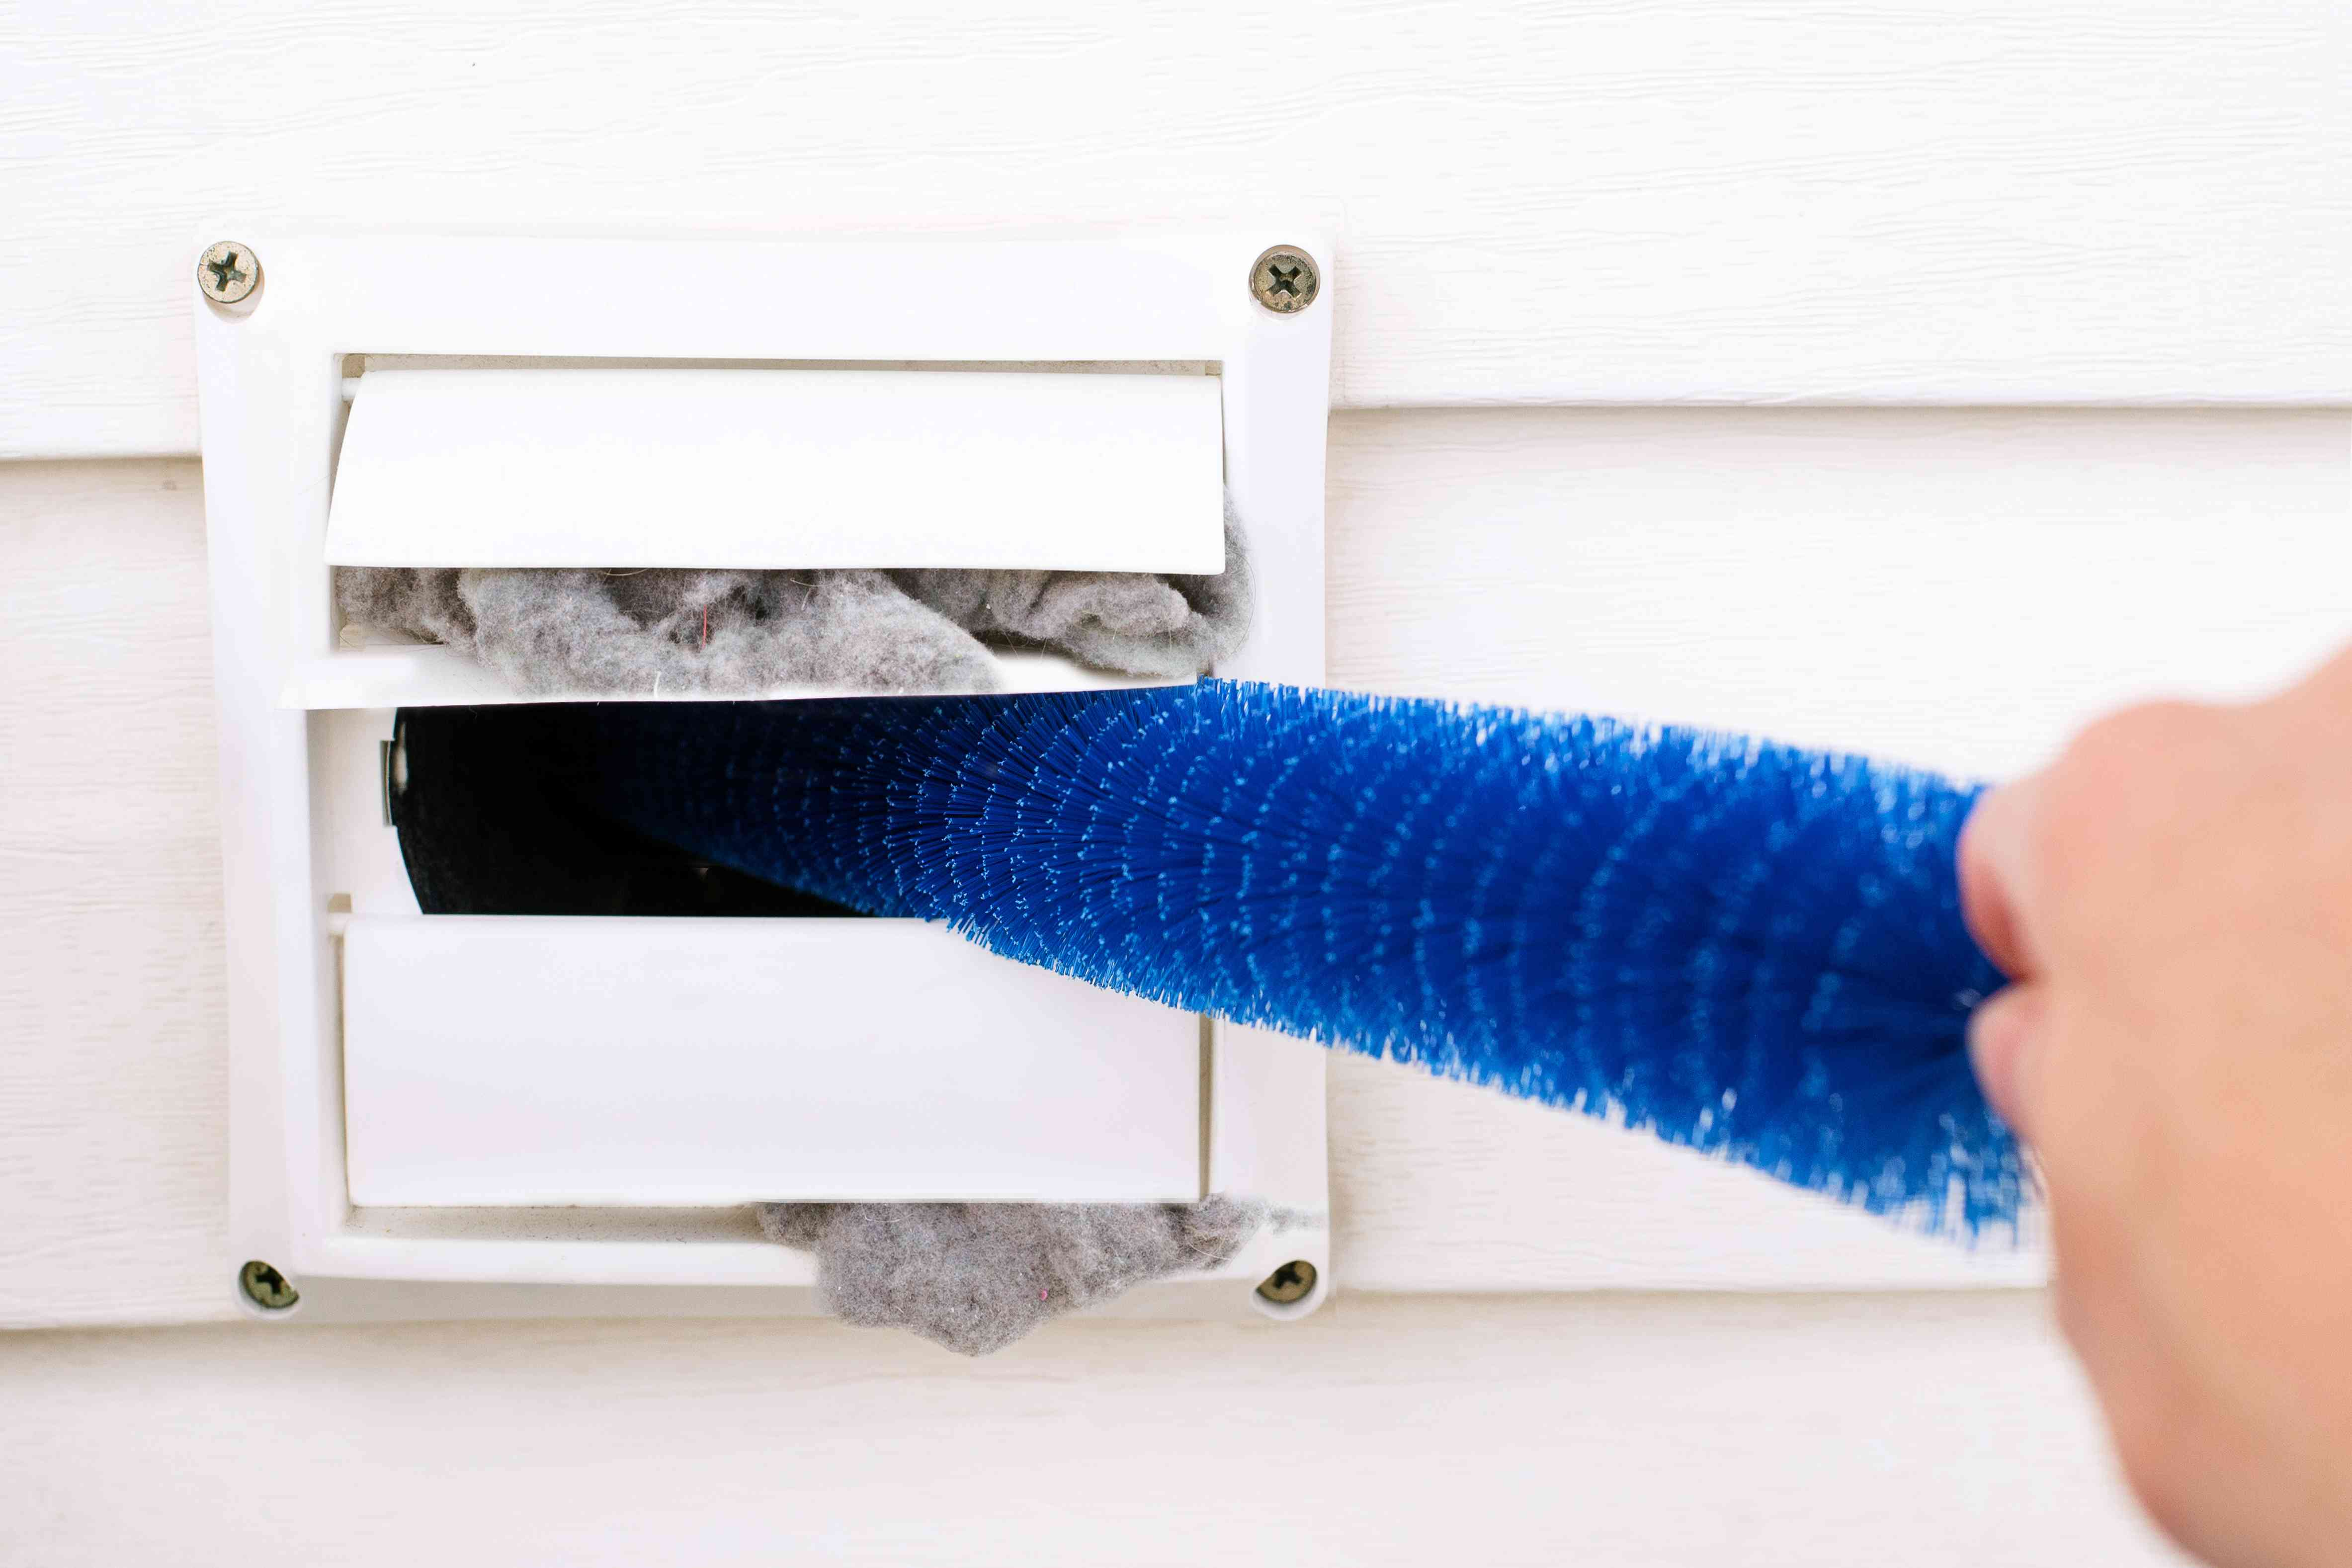 Long lint brush removing lint and debris from outside dryer vent